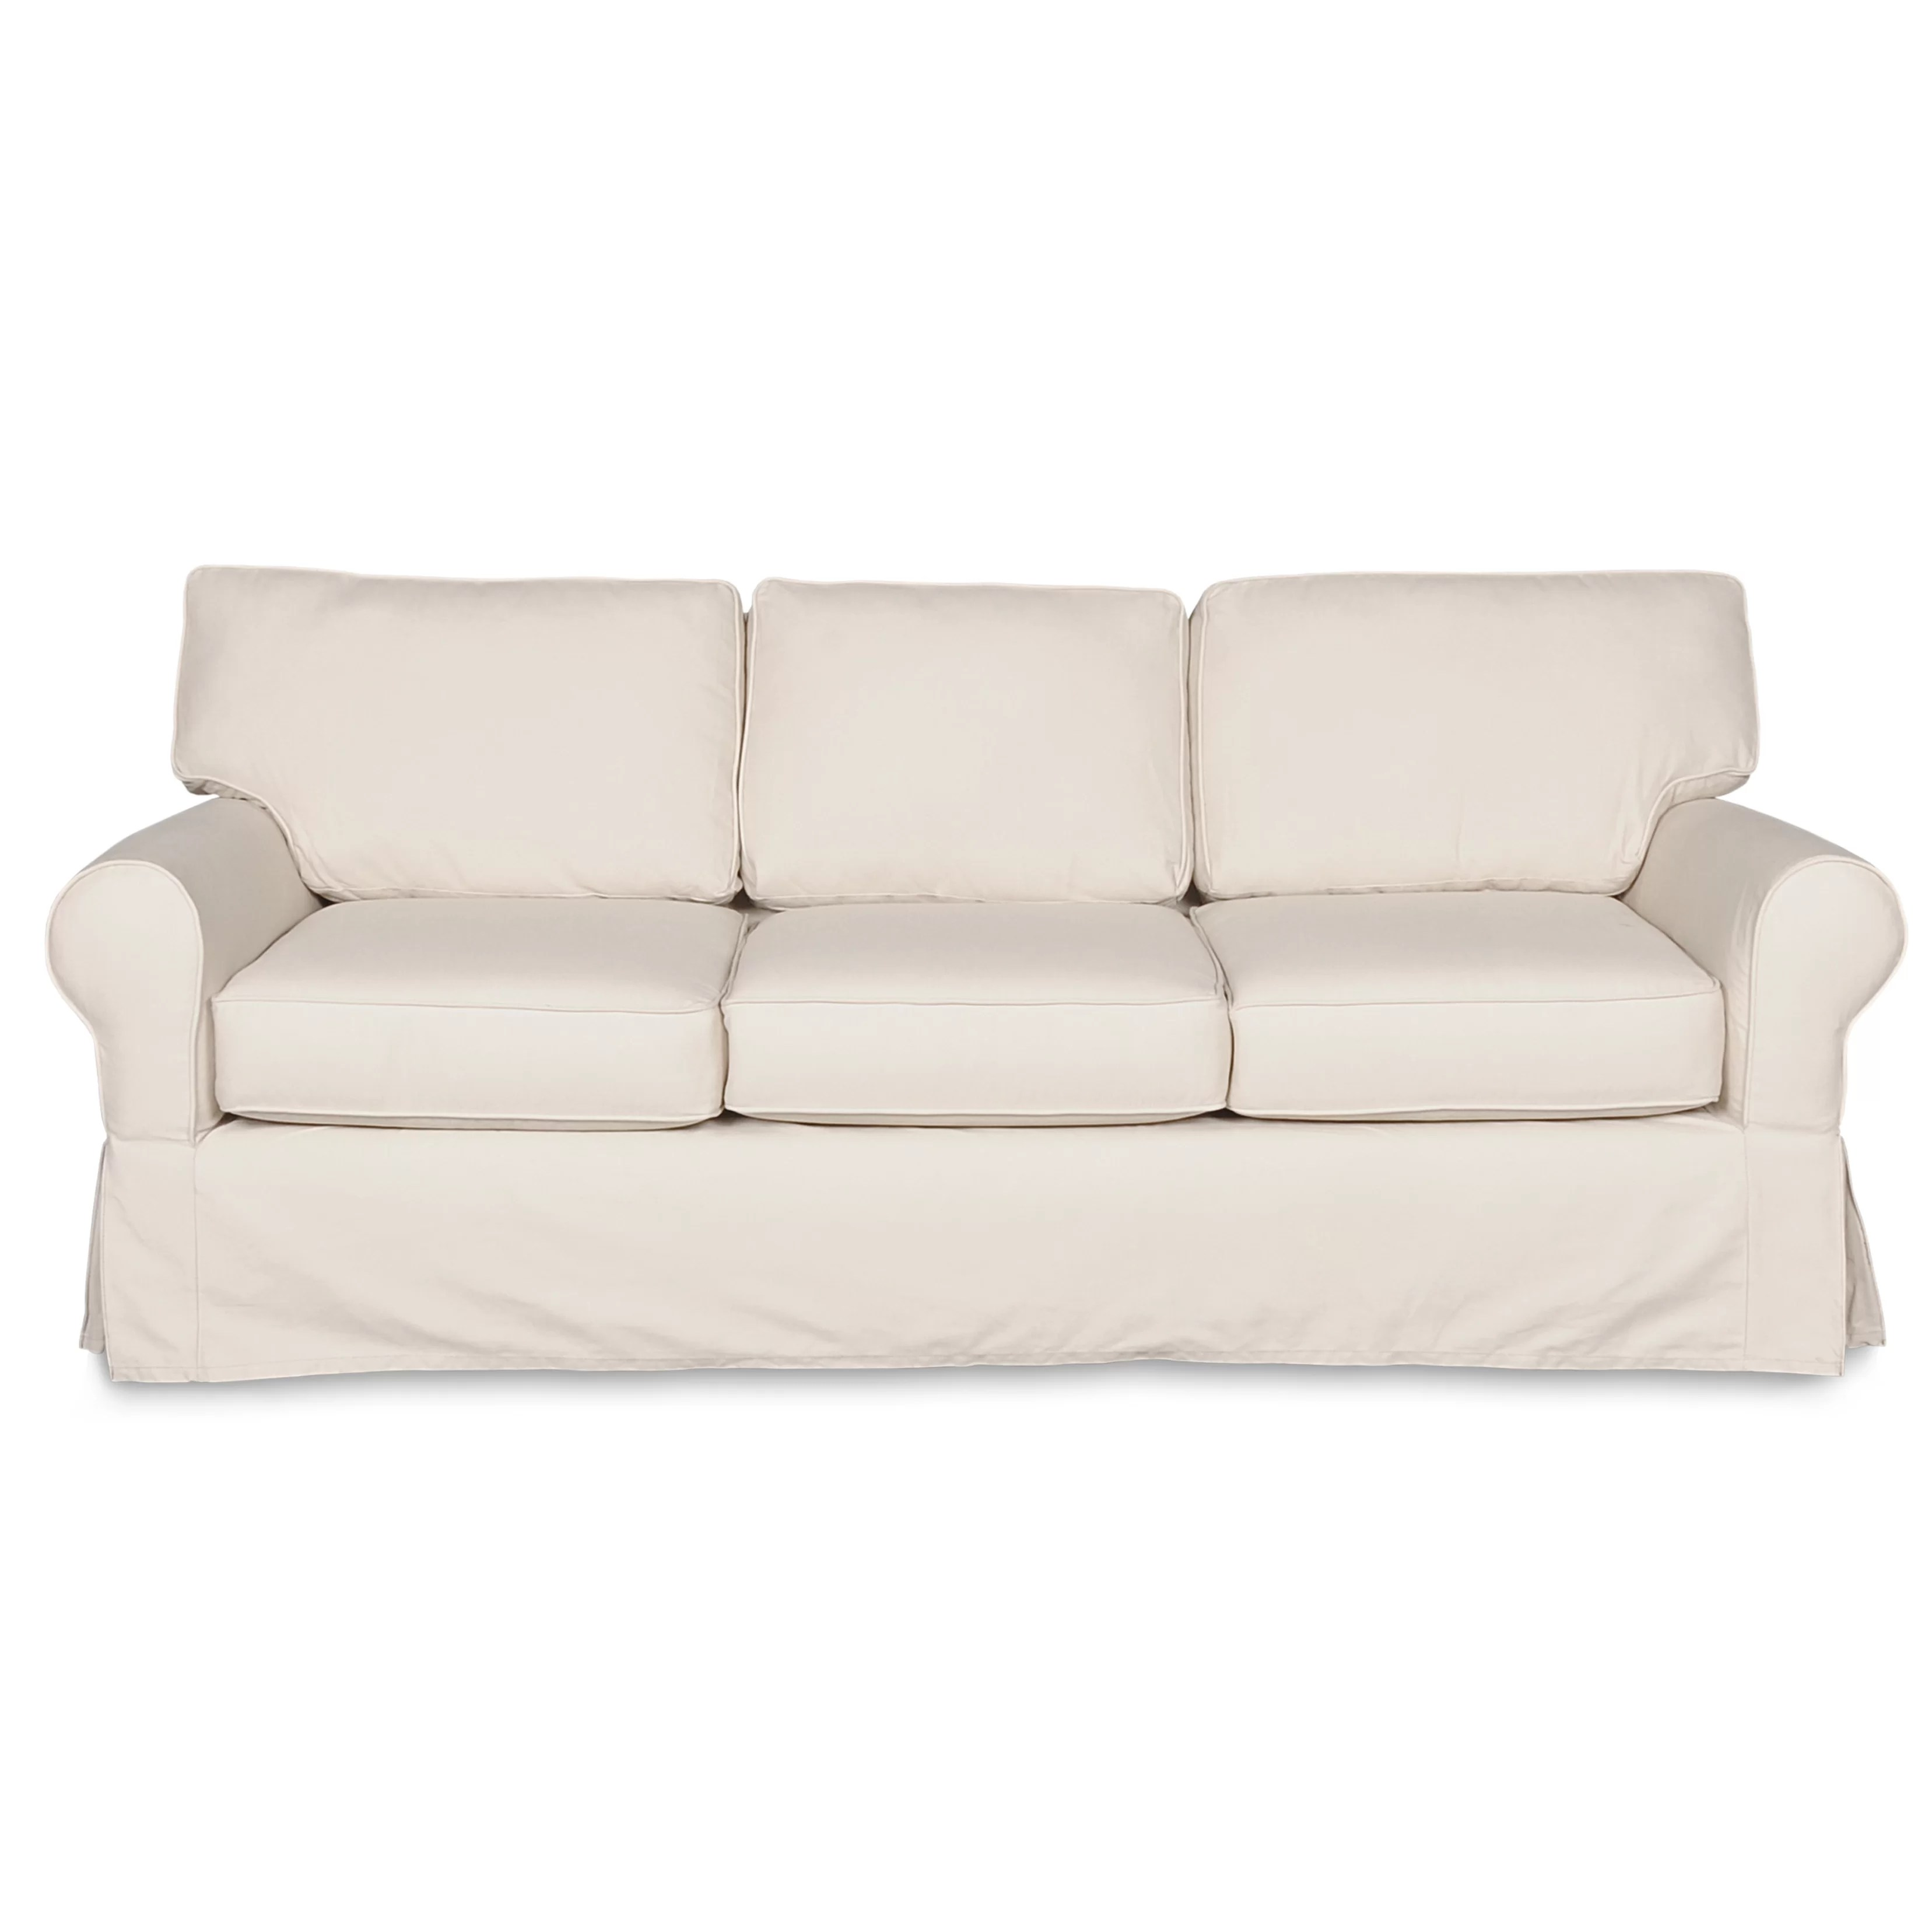 wayfair sofa covers large chesterfield sofas uk darby home co slipcover and reviews